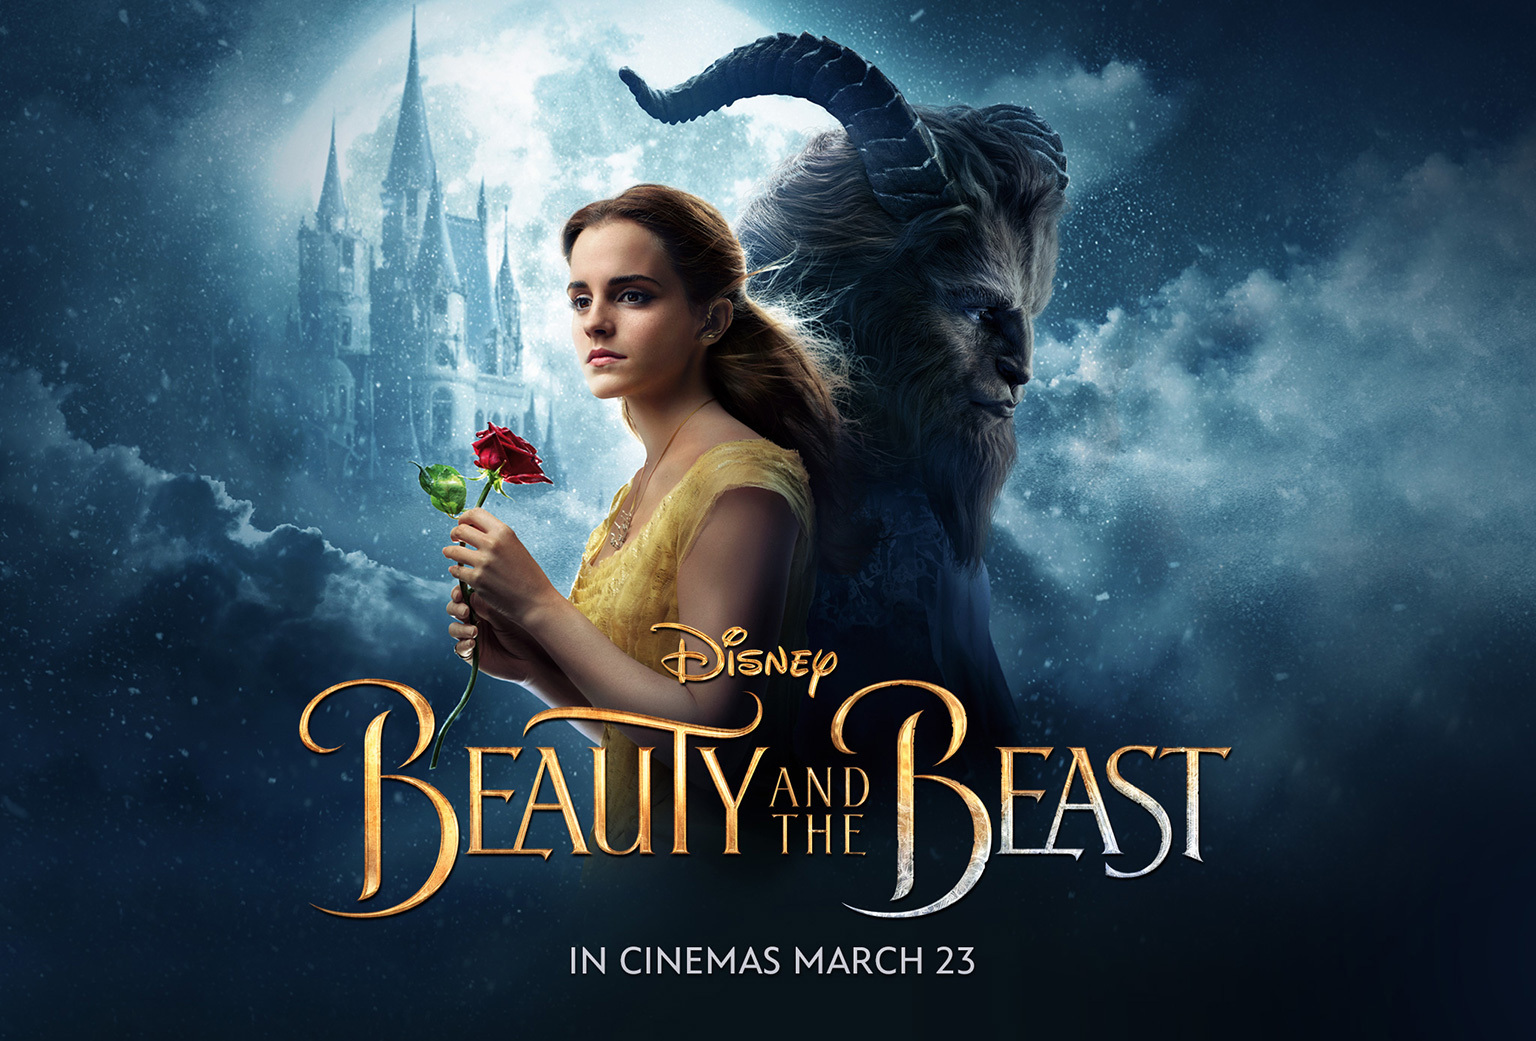 au_rich_large_beautyandthebeast_payoff_4bfd4fa0.jpg